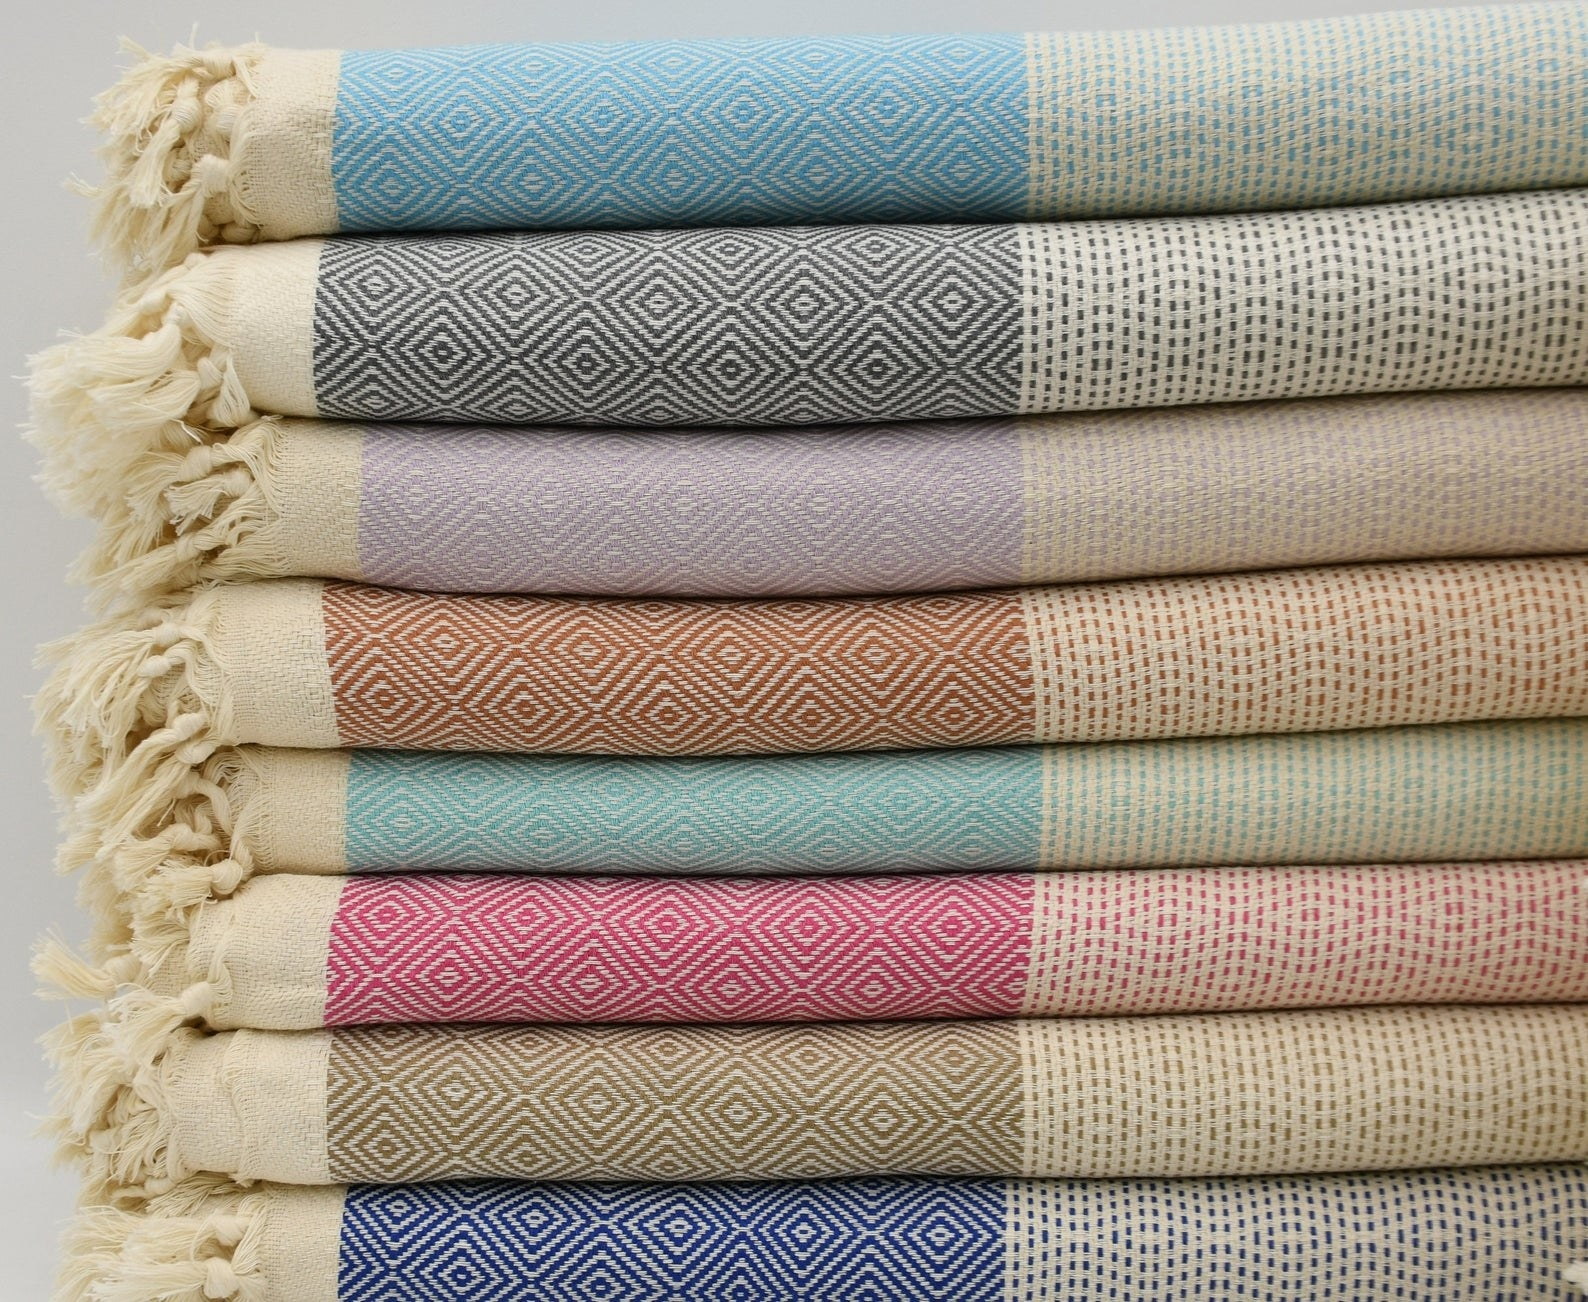 a stack of patterned blankets in different colors with fringed edges